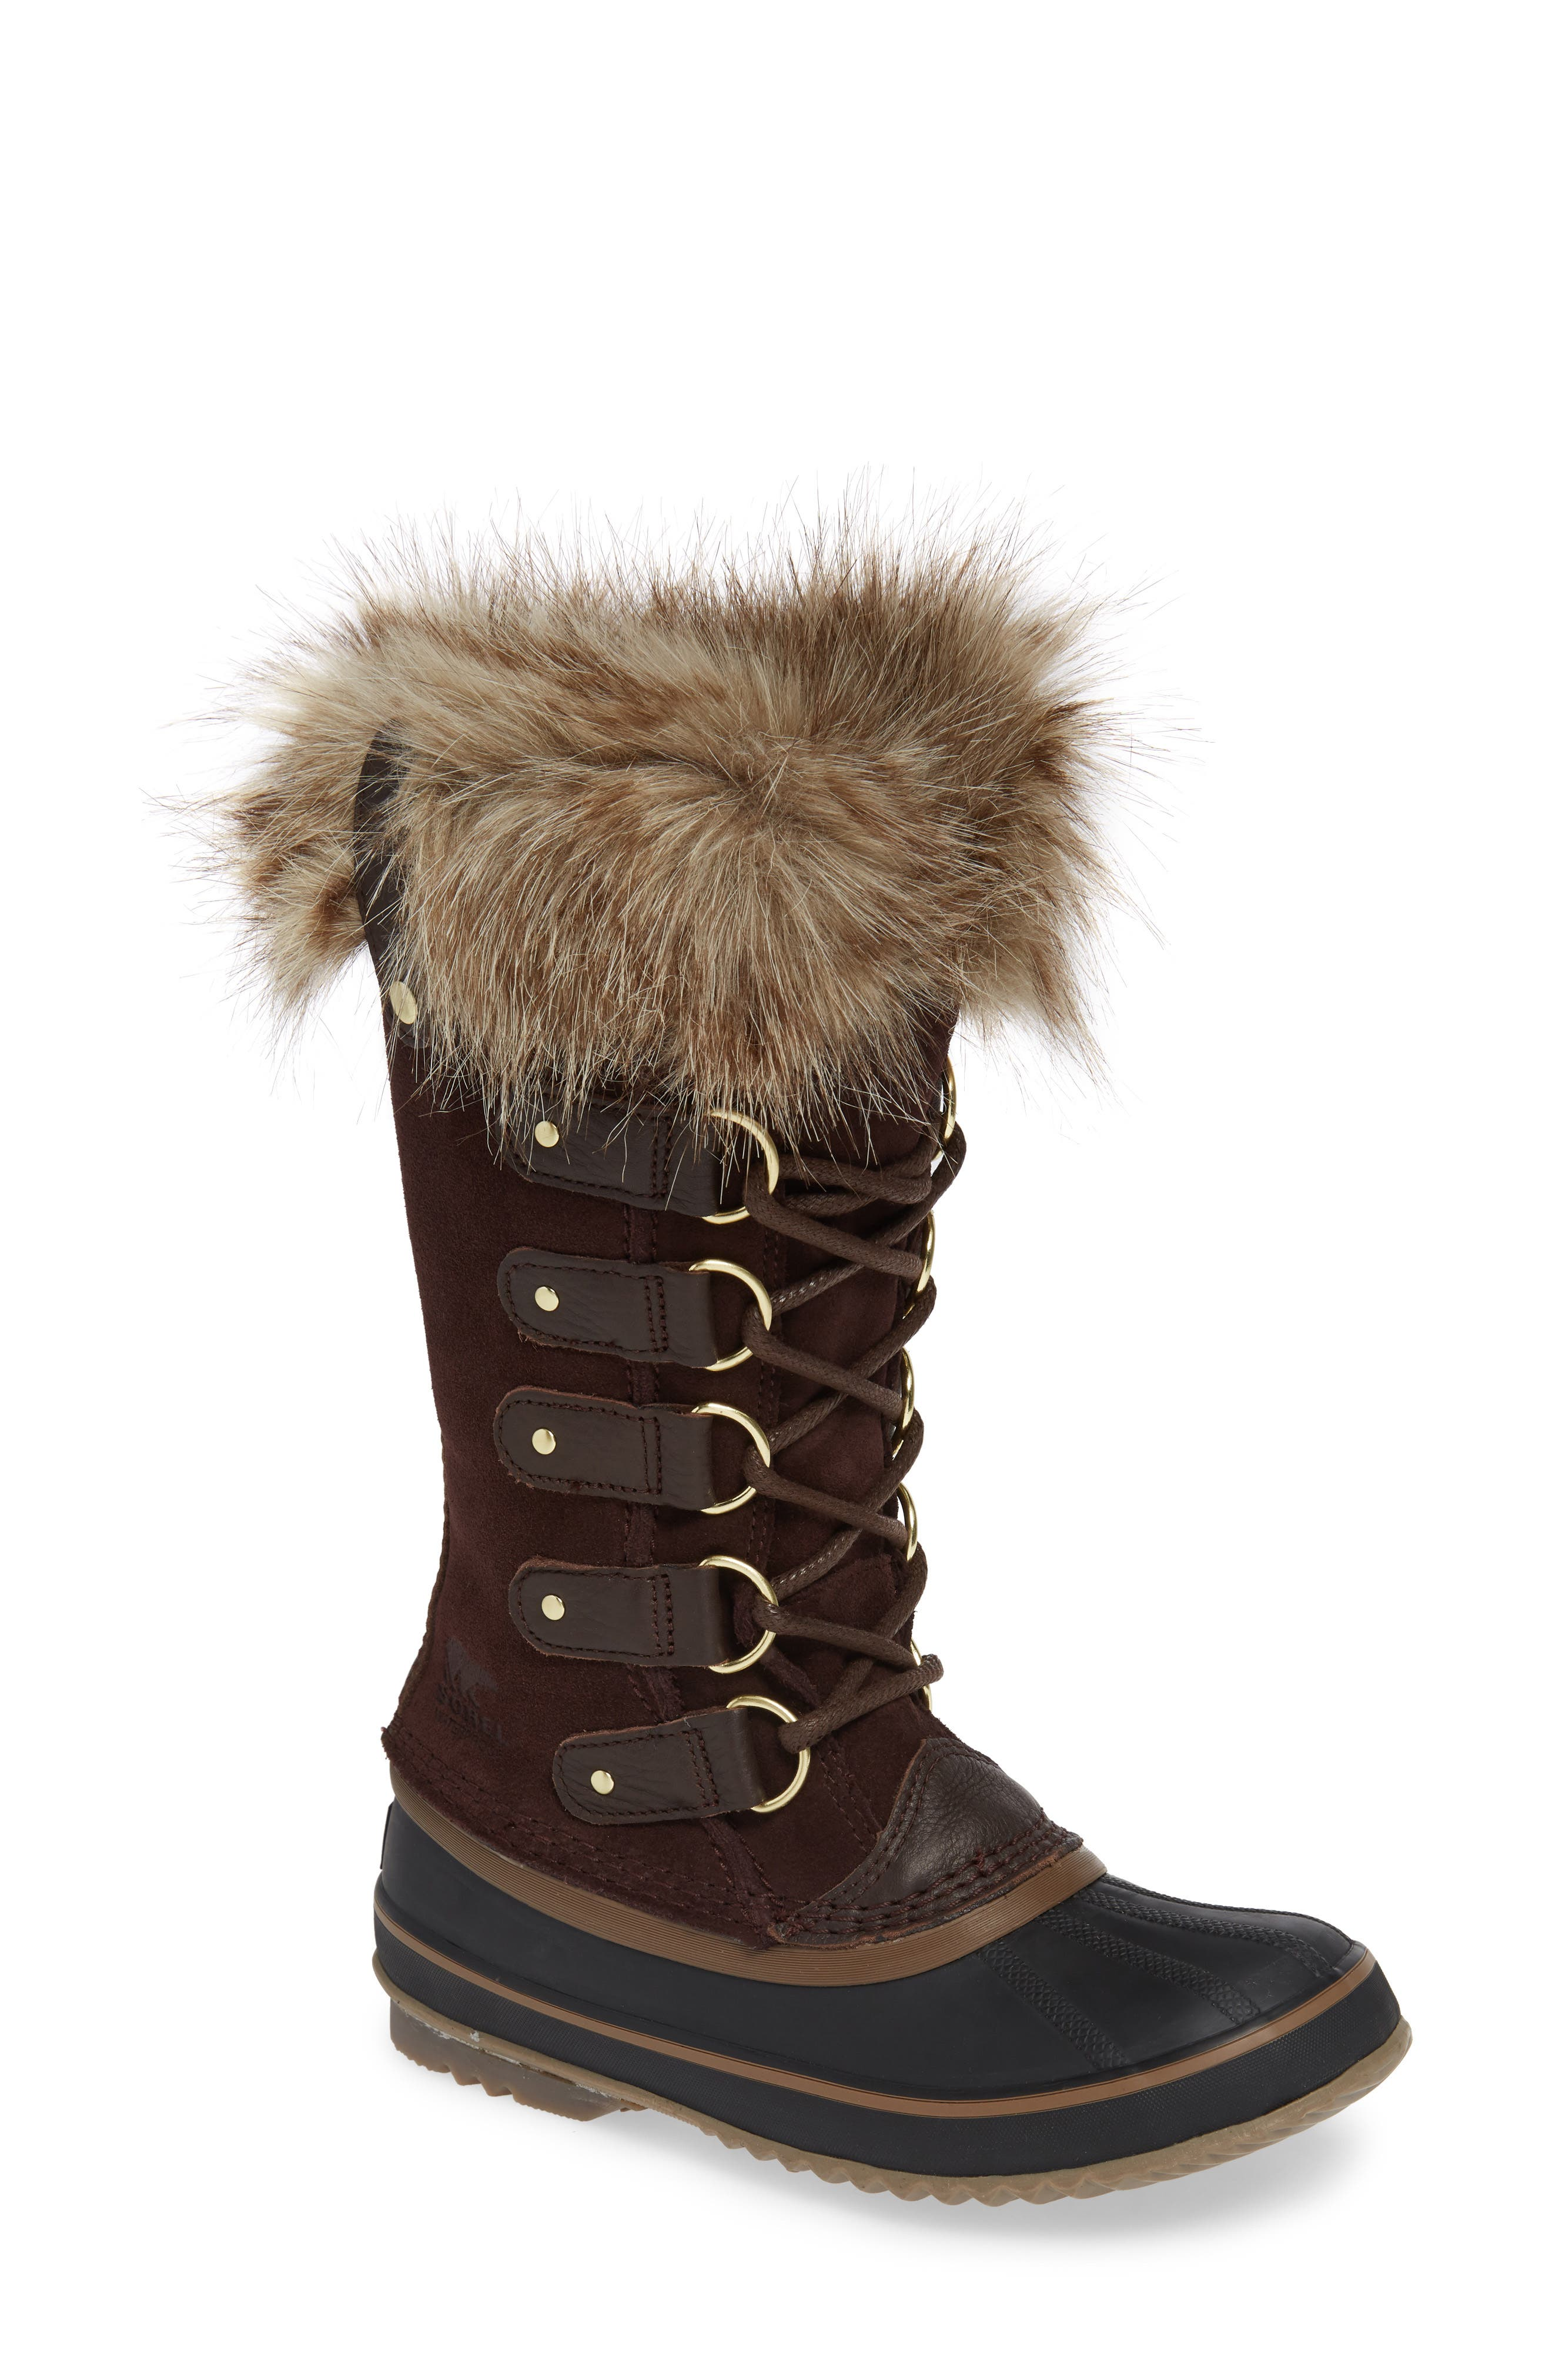 'Joan of Arctic' Waterproof Snow Boot,                         Main,                         color, CATTAIL